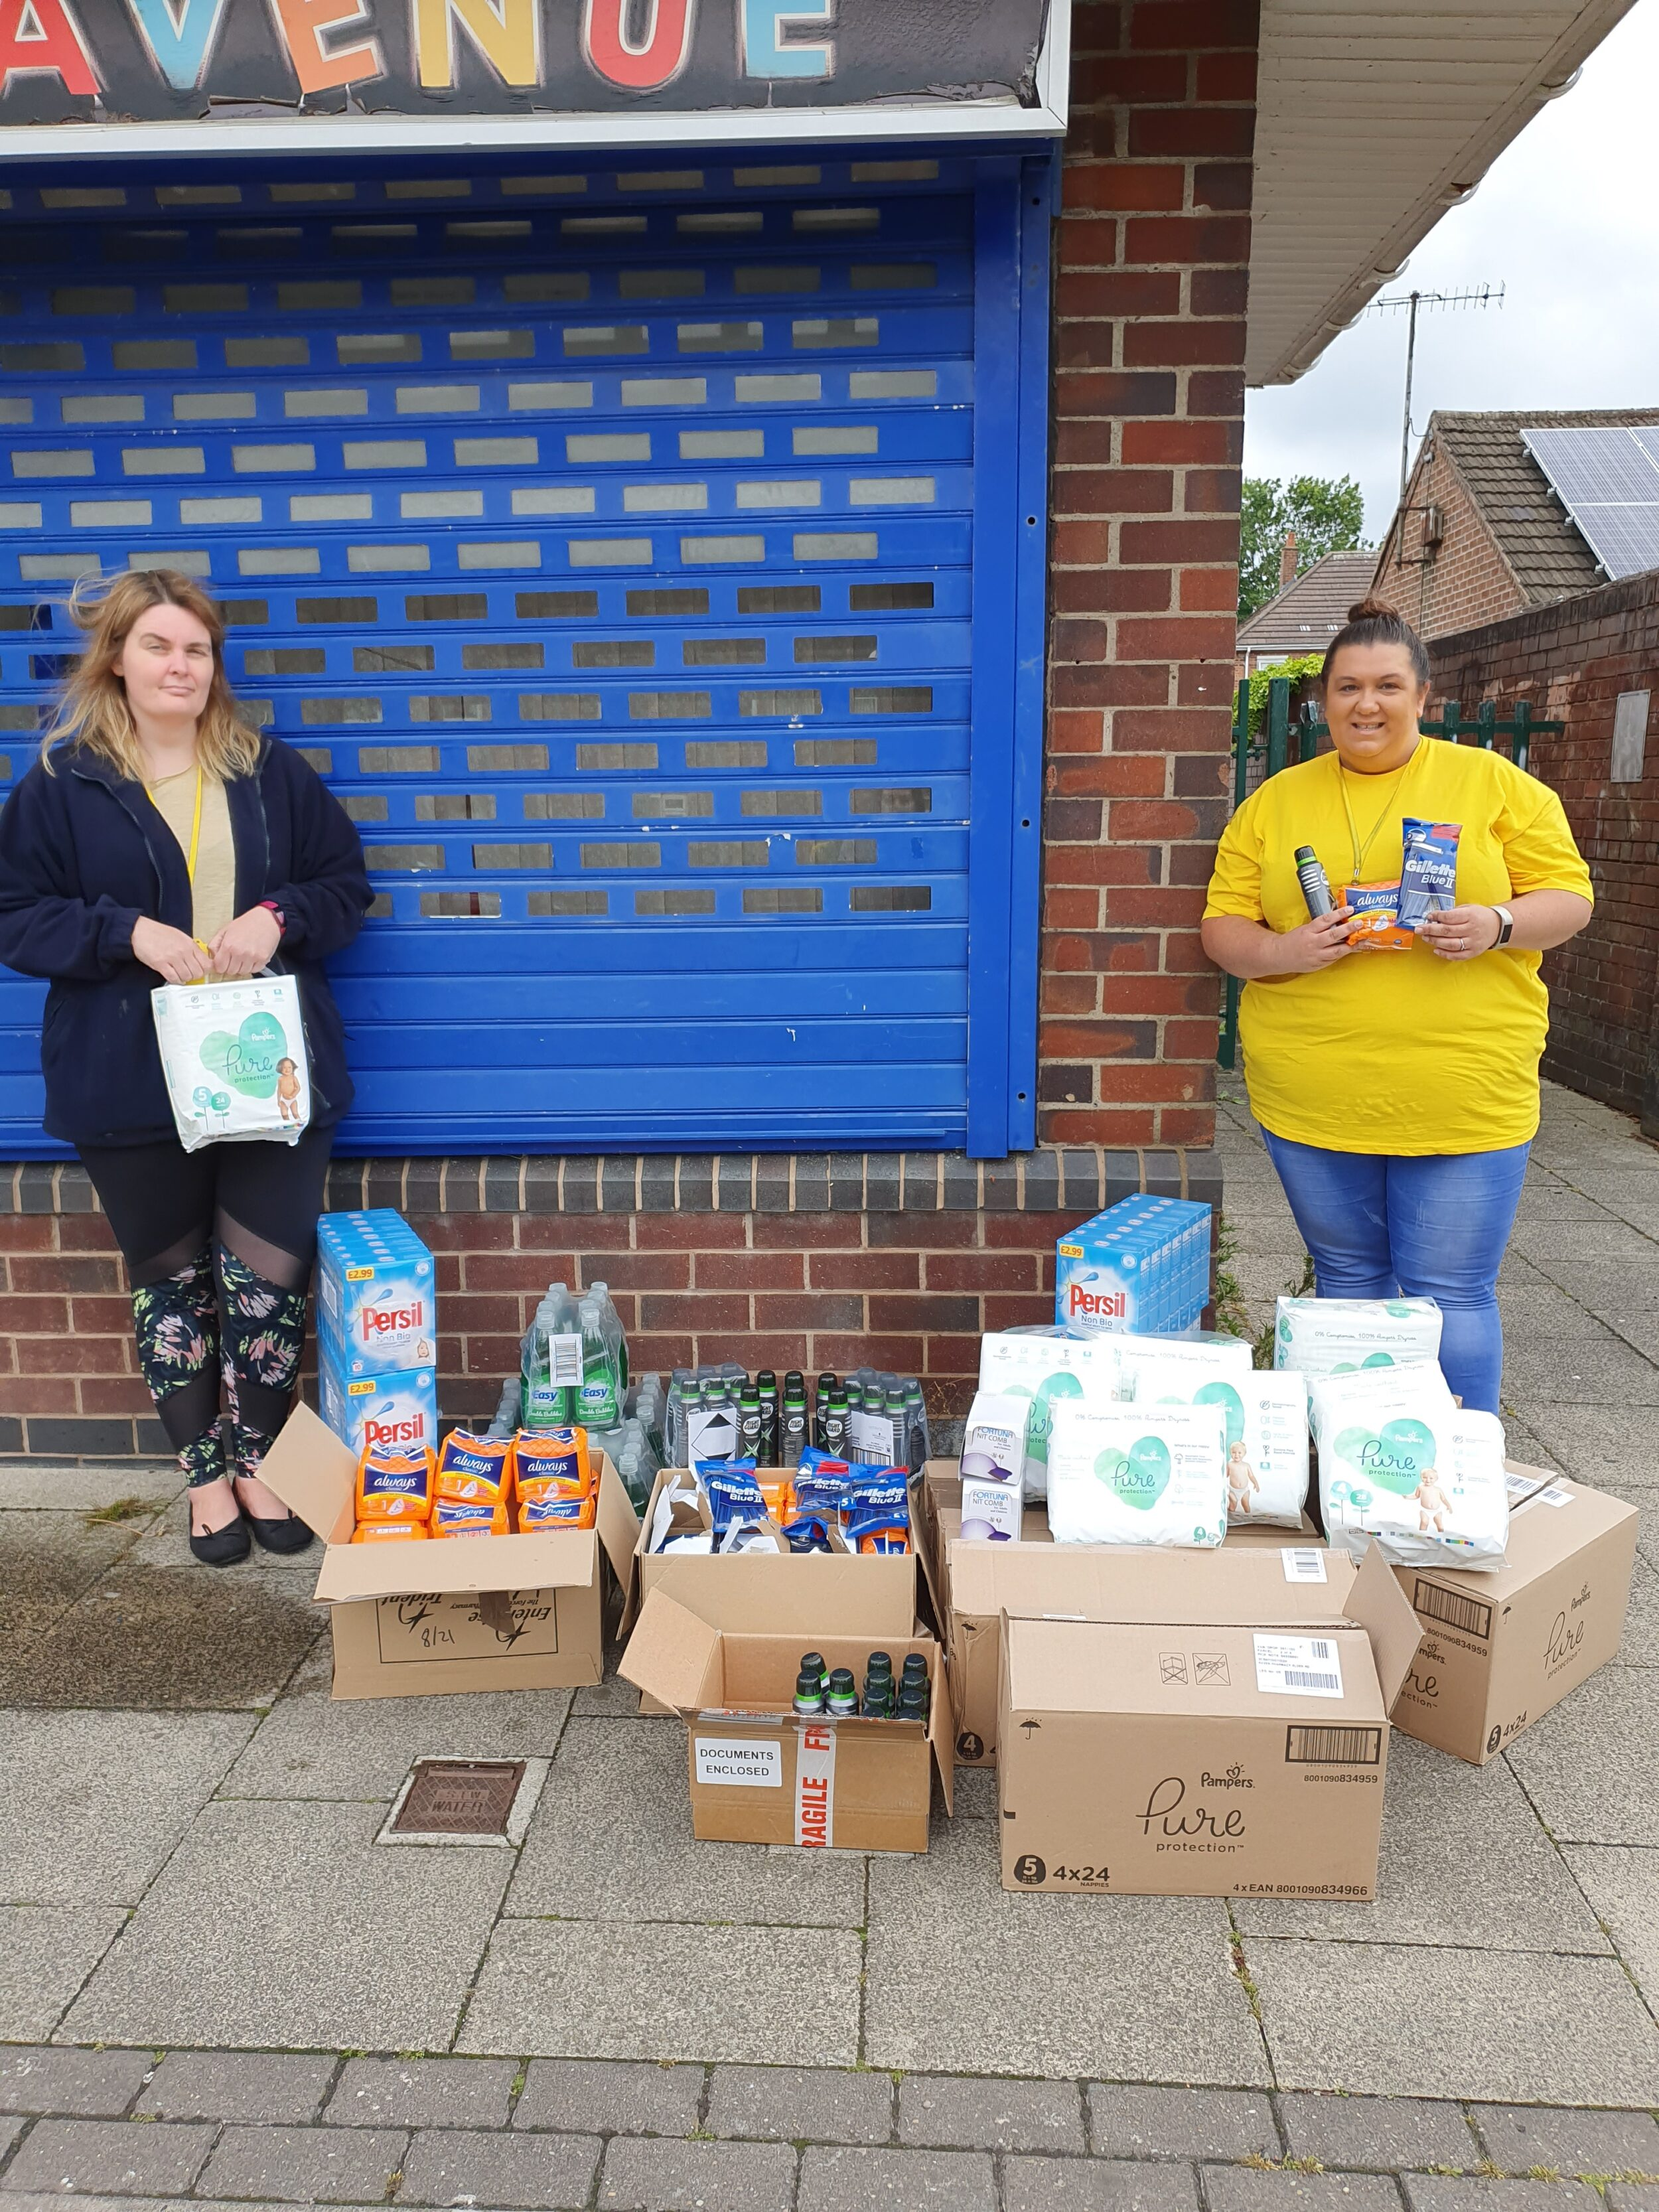 Unitas' Helping Hands donation to The Hygiene Bank